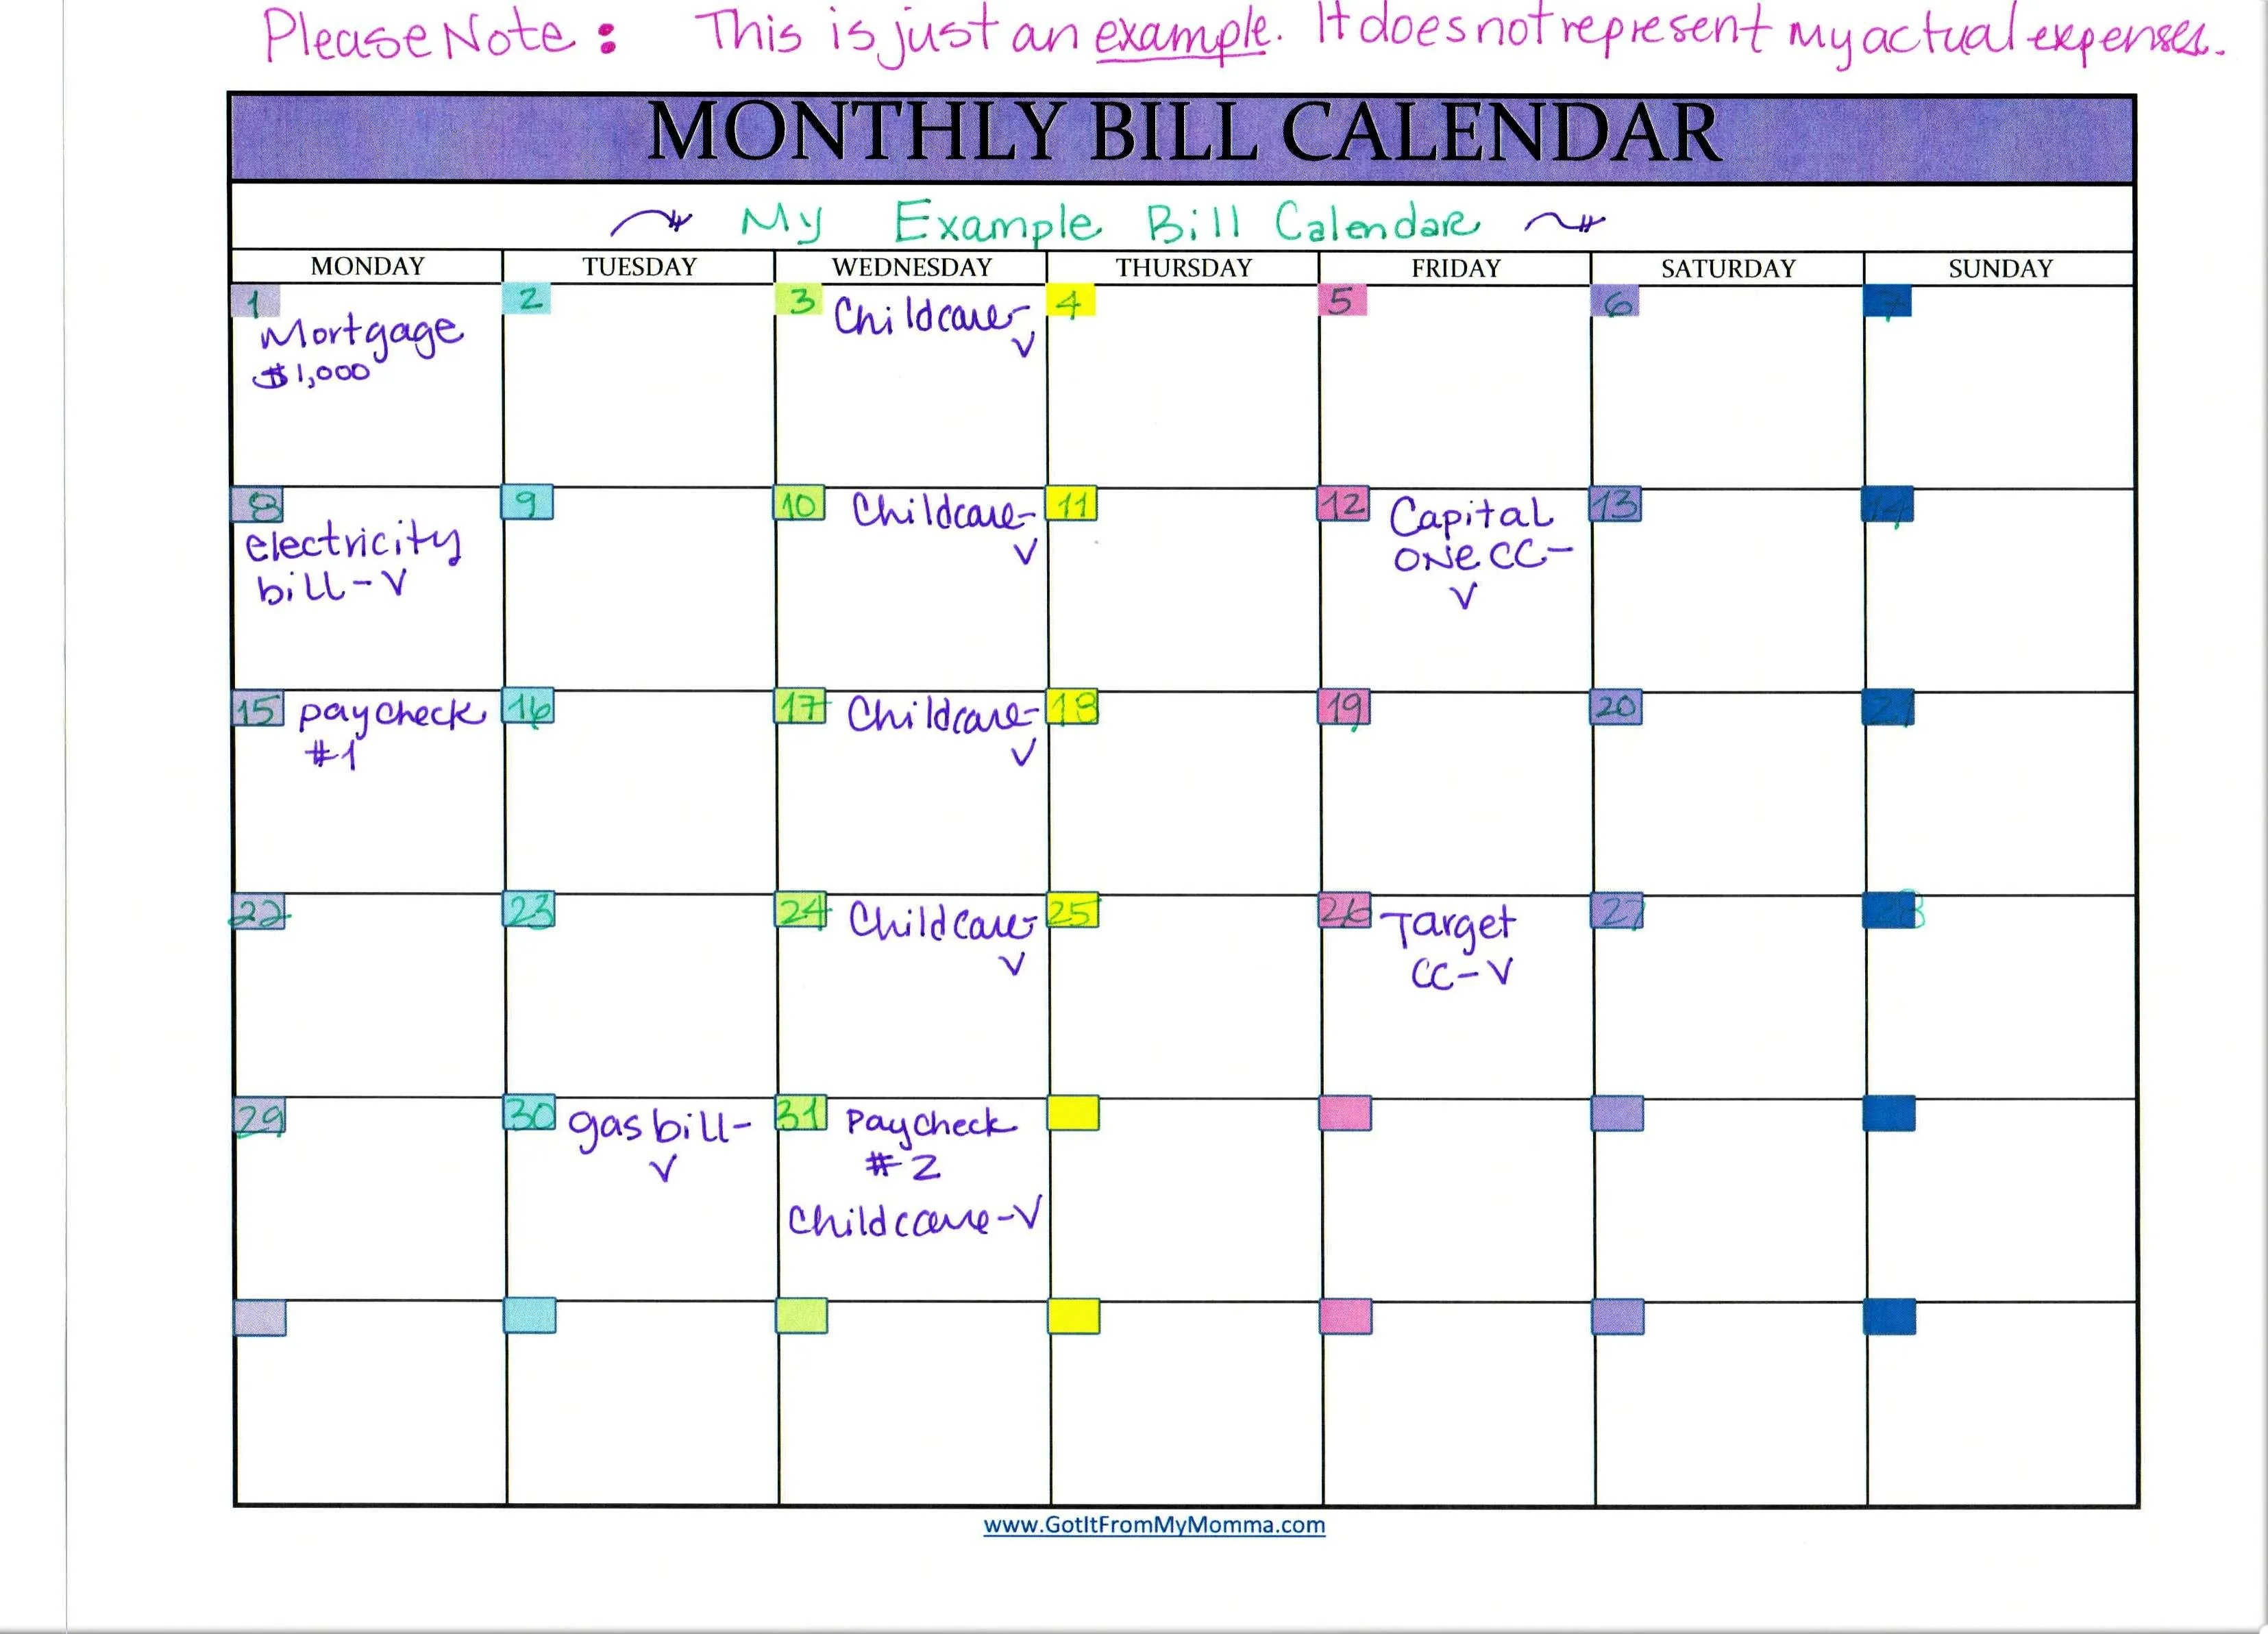 tracking your bills with a monthly bill calendar